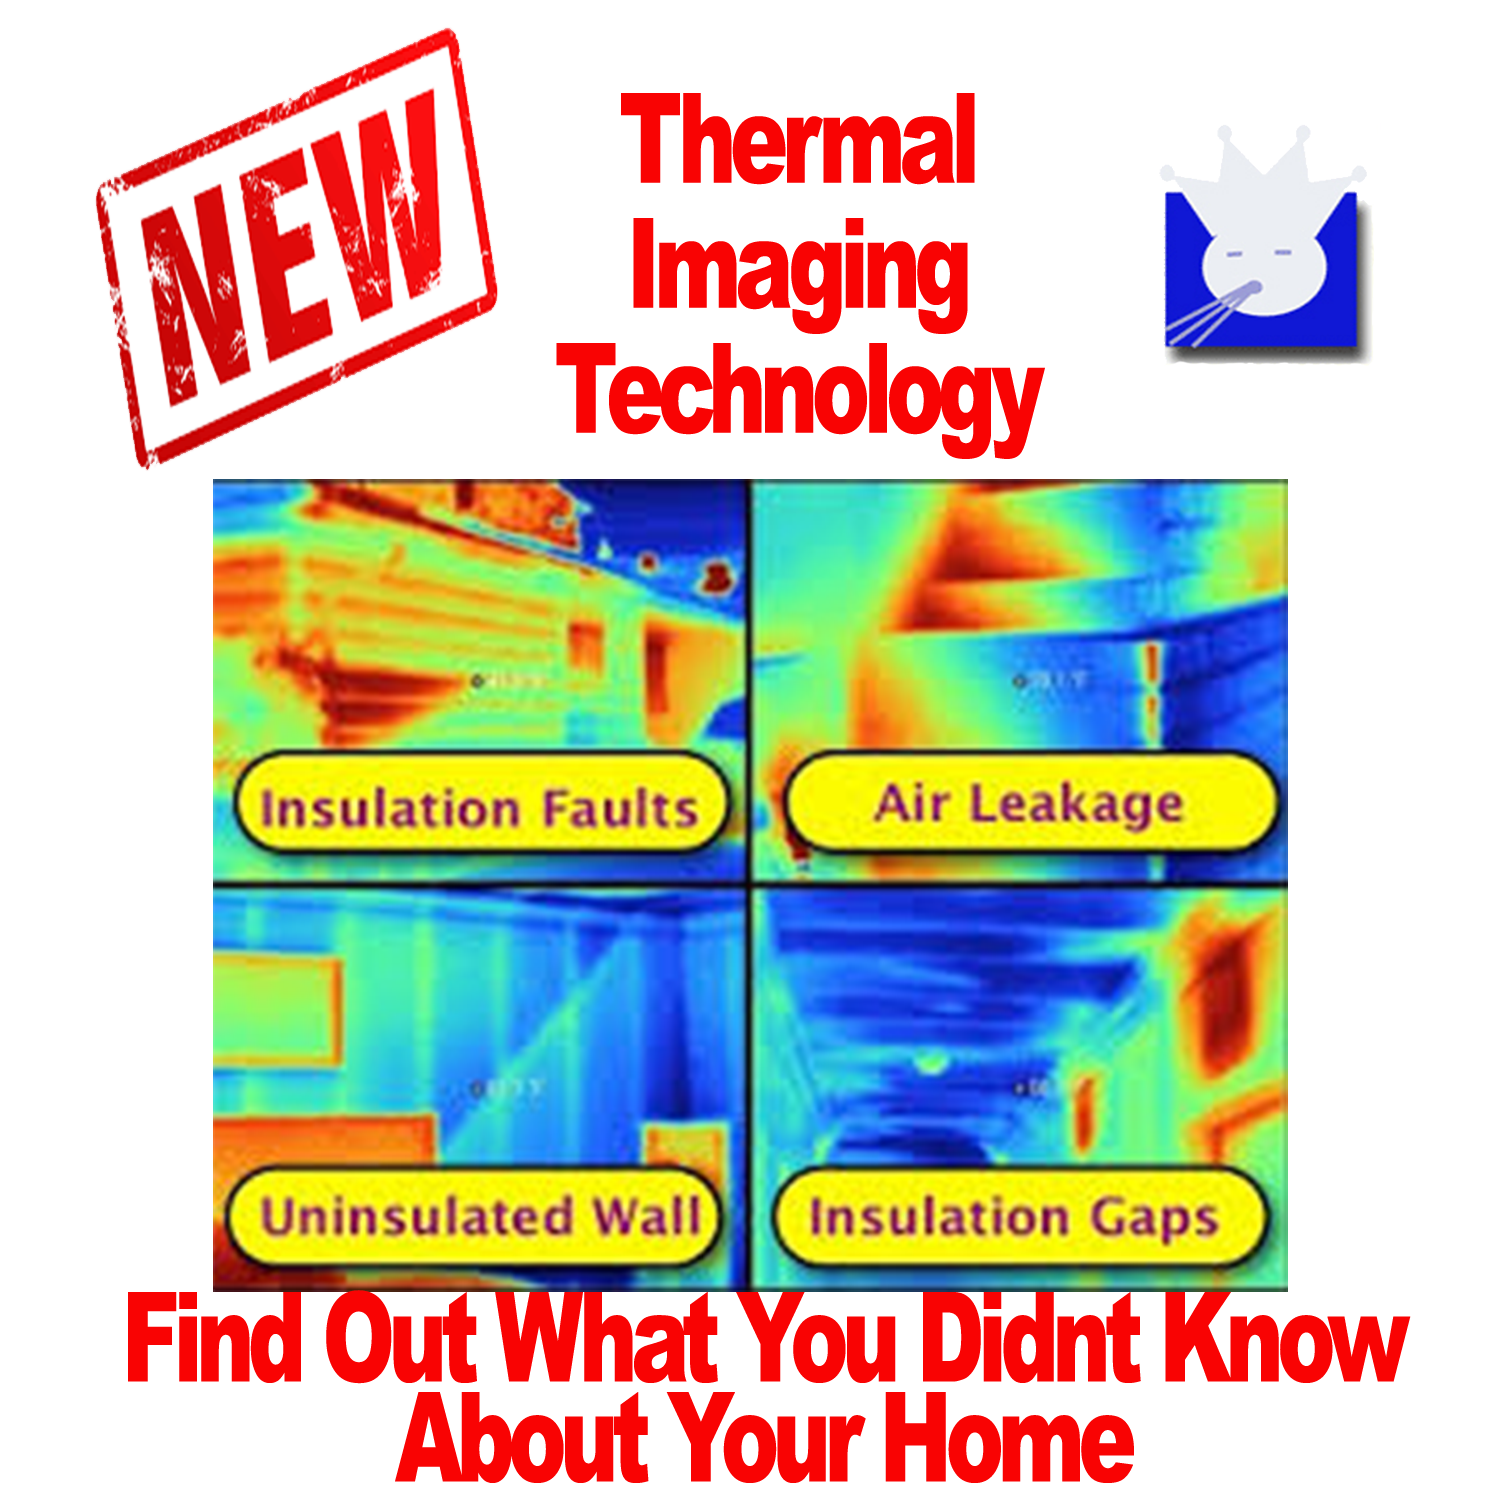 AAA Duct Cleaning offers Thermal imaging services for new home buyers San Antonio. Thermal imaging can help reveal air leaks and insulation problems San Antonio. San Antonio Thermal Imaging Company.